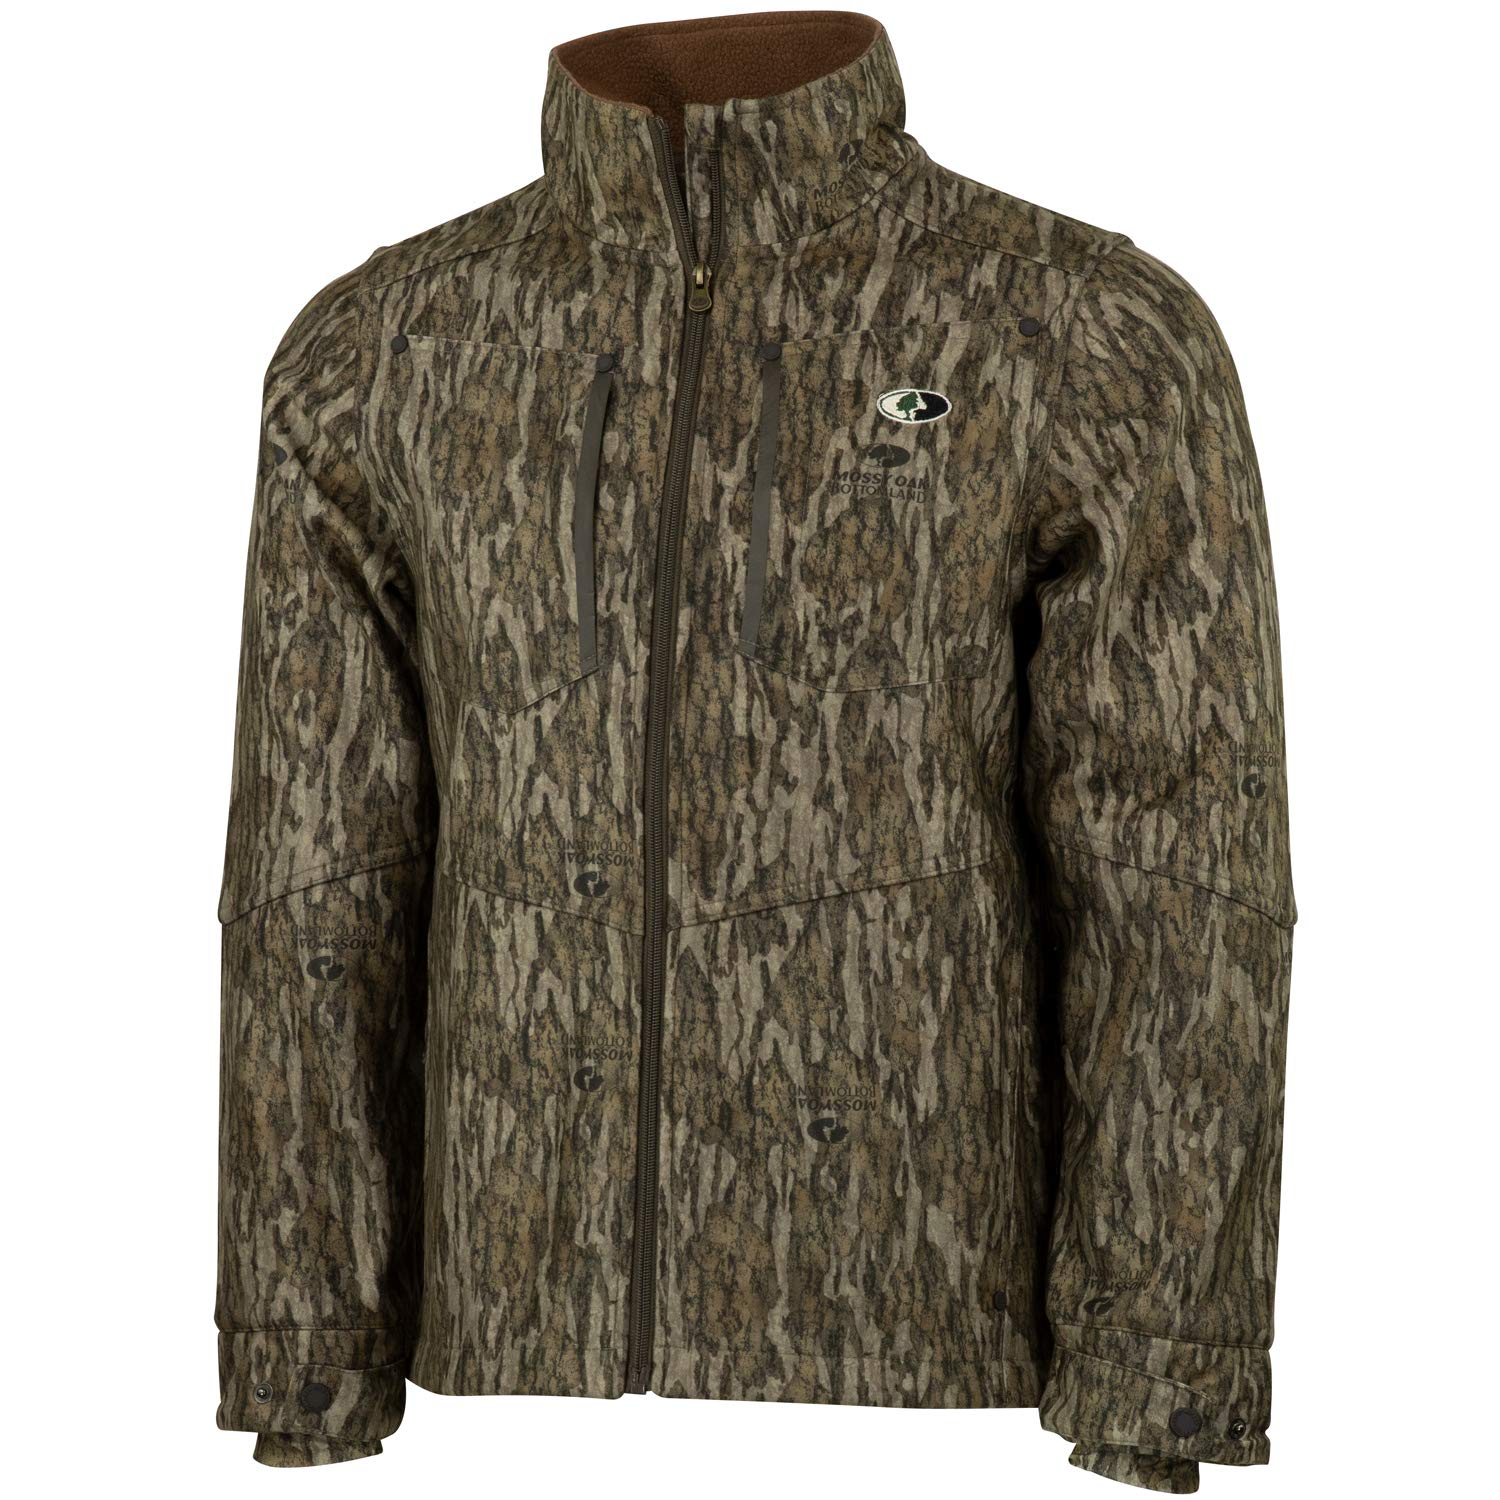 Mossy Oak Men's Camo Sherpa 2.0 Fleece Lined Hunting Jacket, Bottomland, X-Large by Mossy Oak